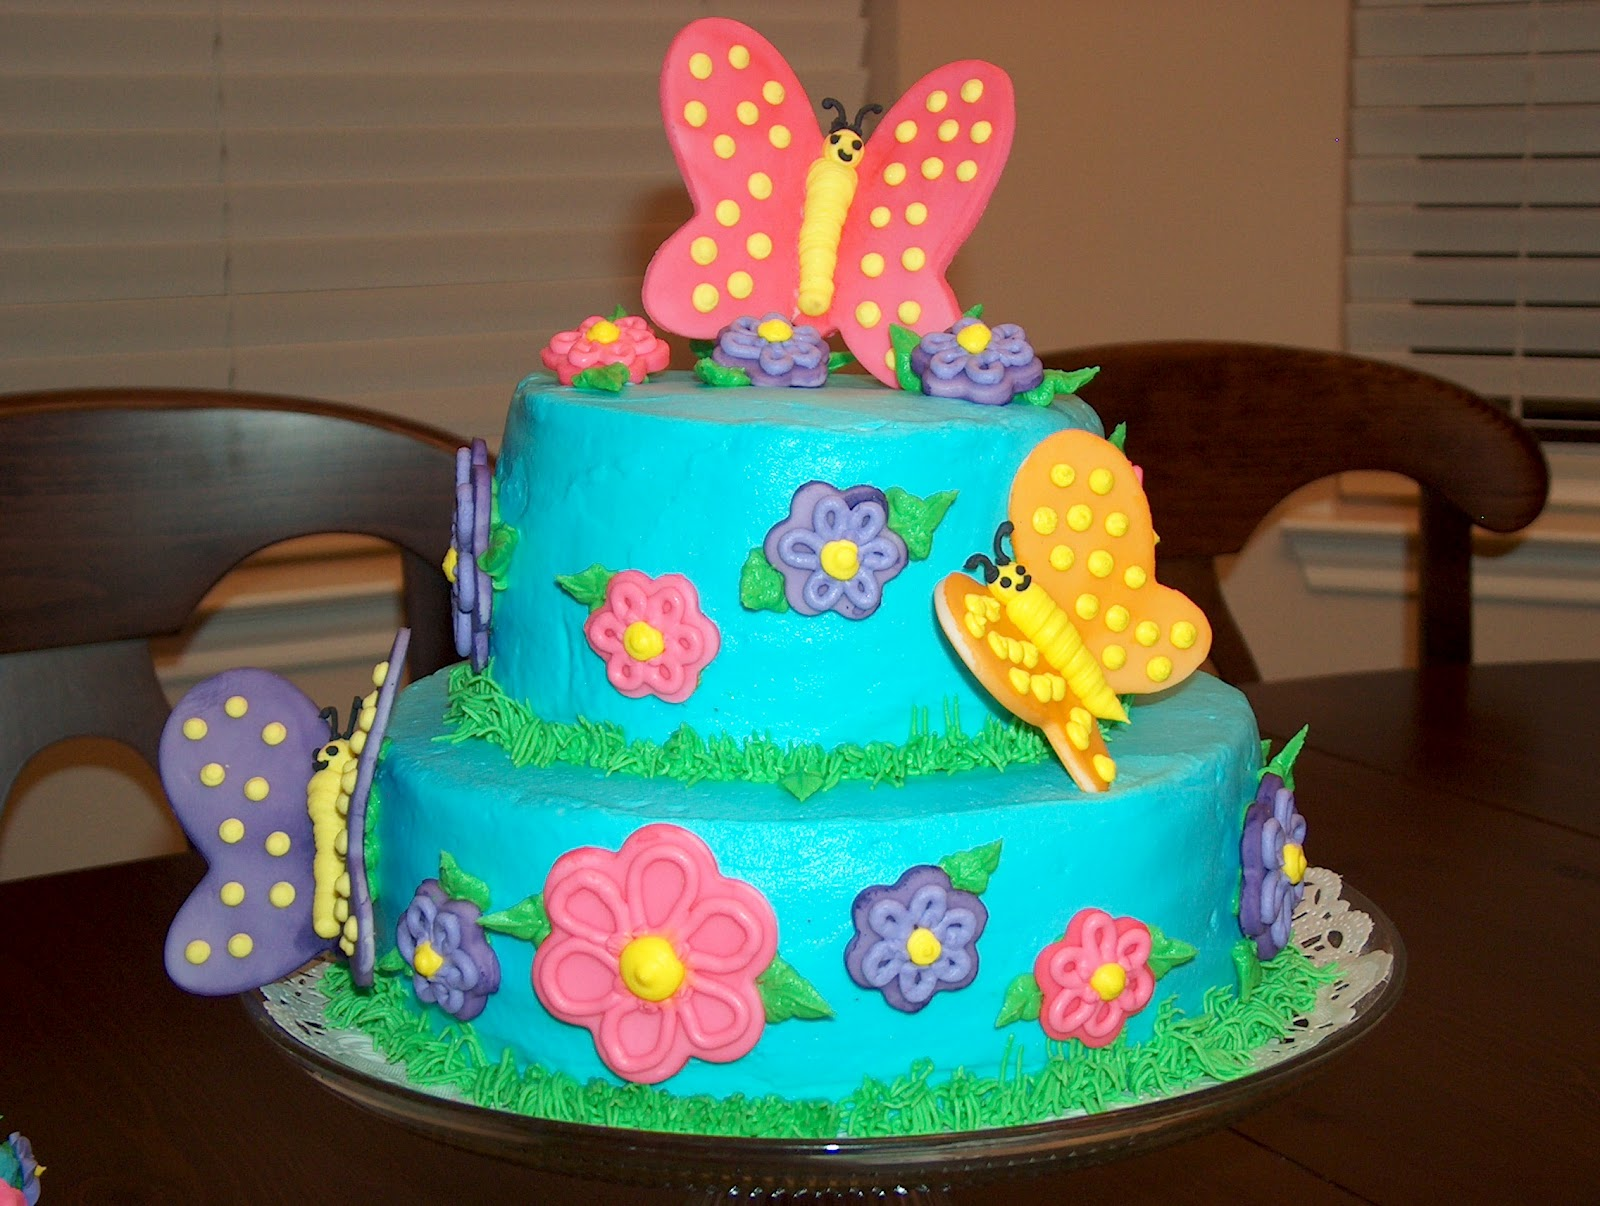 Cake Images With S : Themed Cakes, Birthday Cakes, Wedding Cakes: ButterFly ...